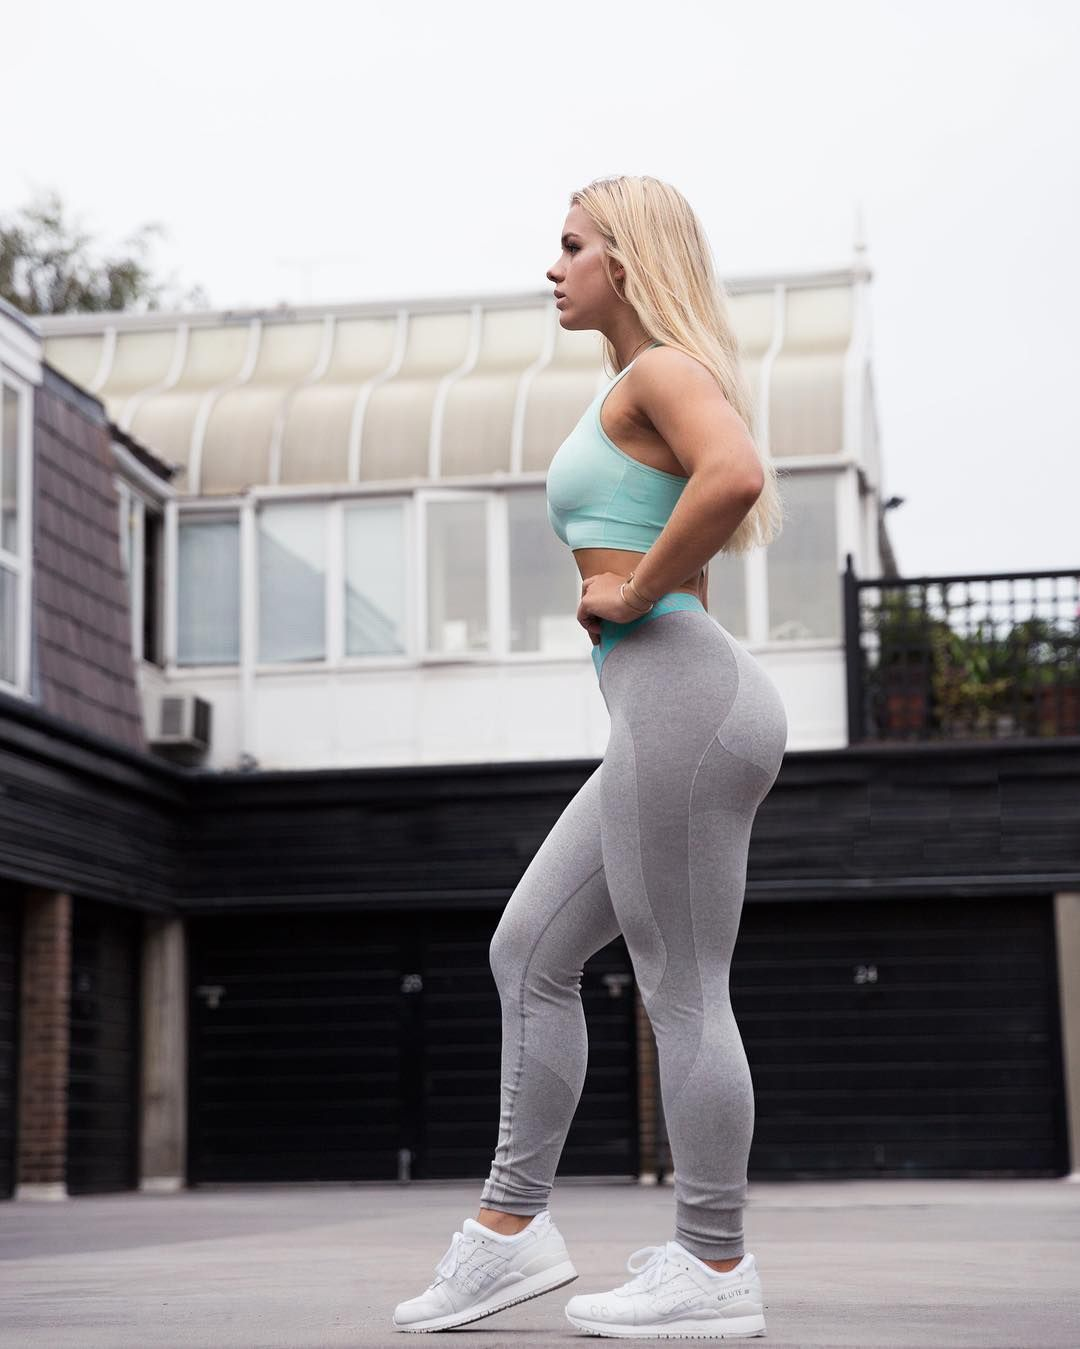 Happy Mint Crush Monday from Grace. Wearing Flex leggings and ...